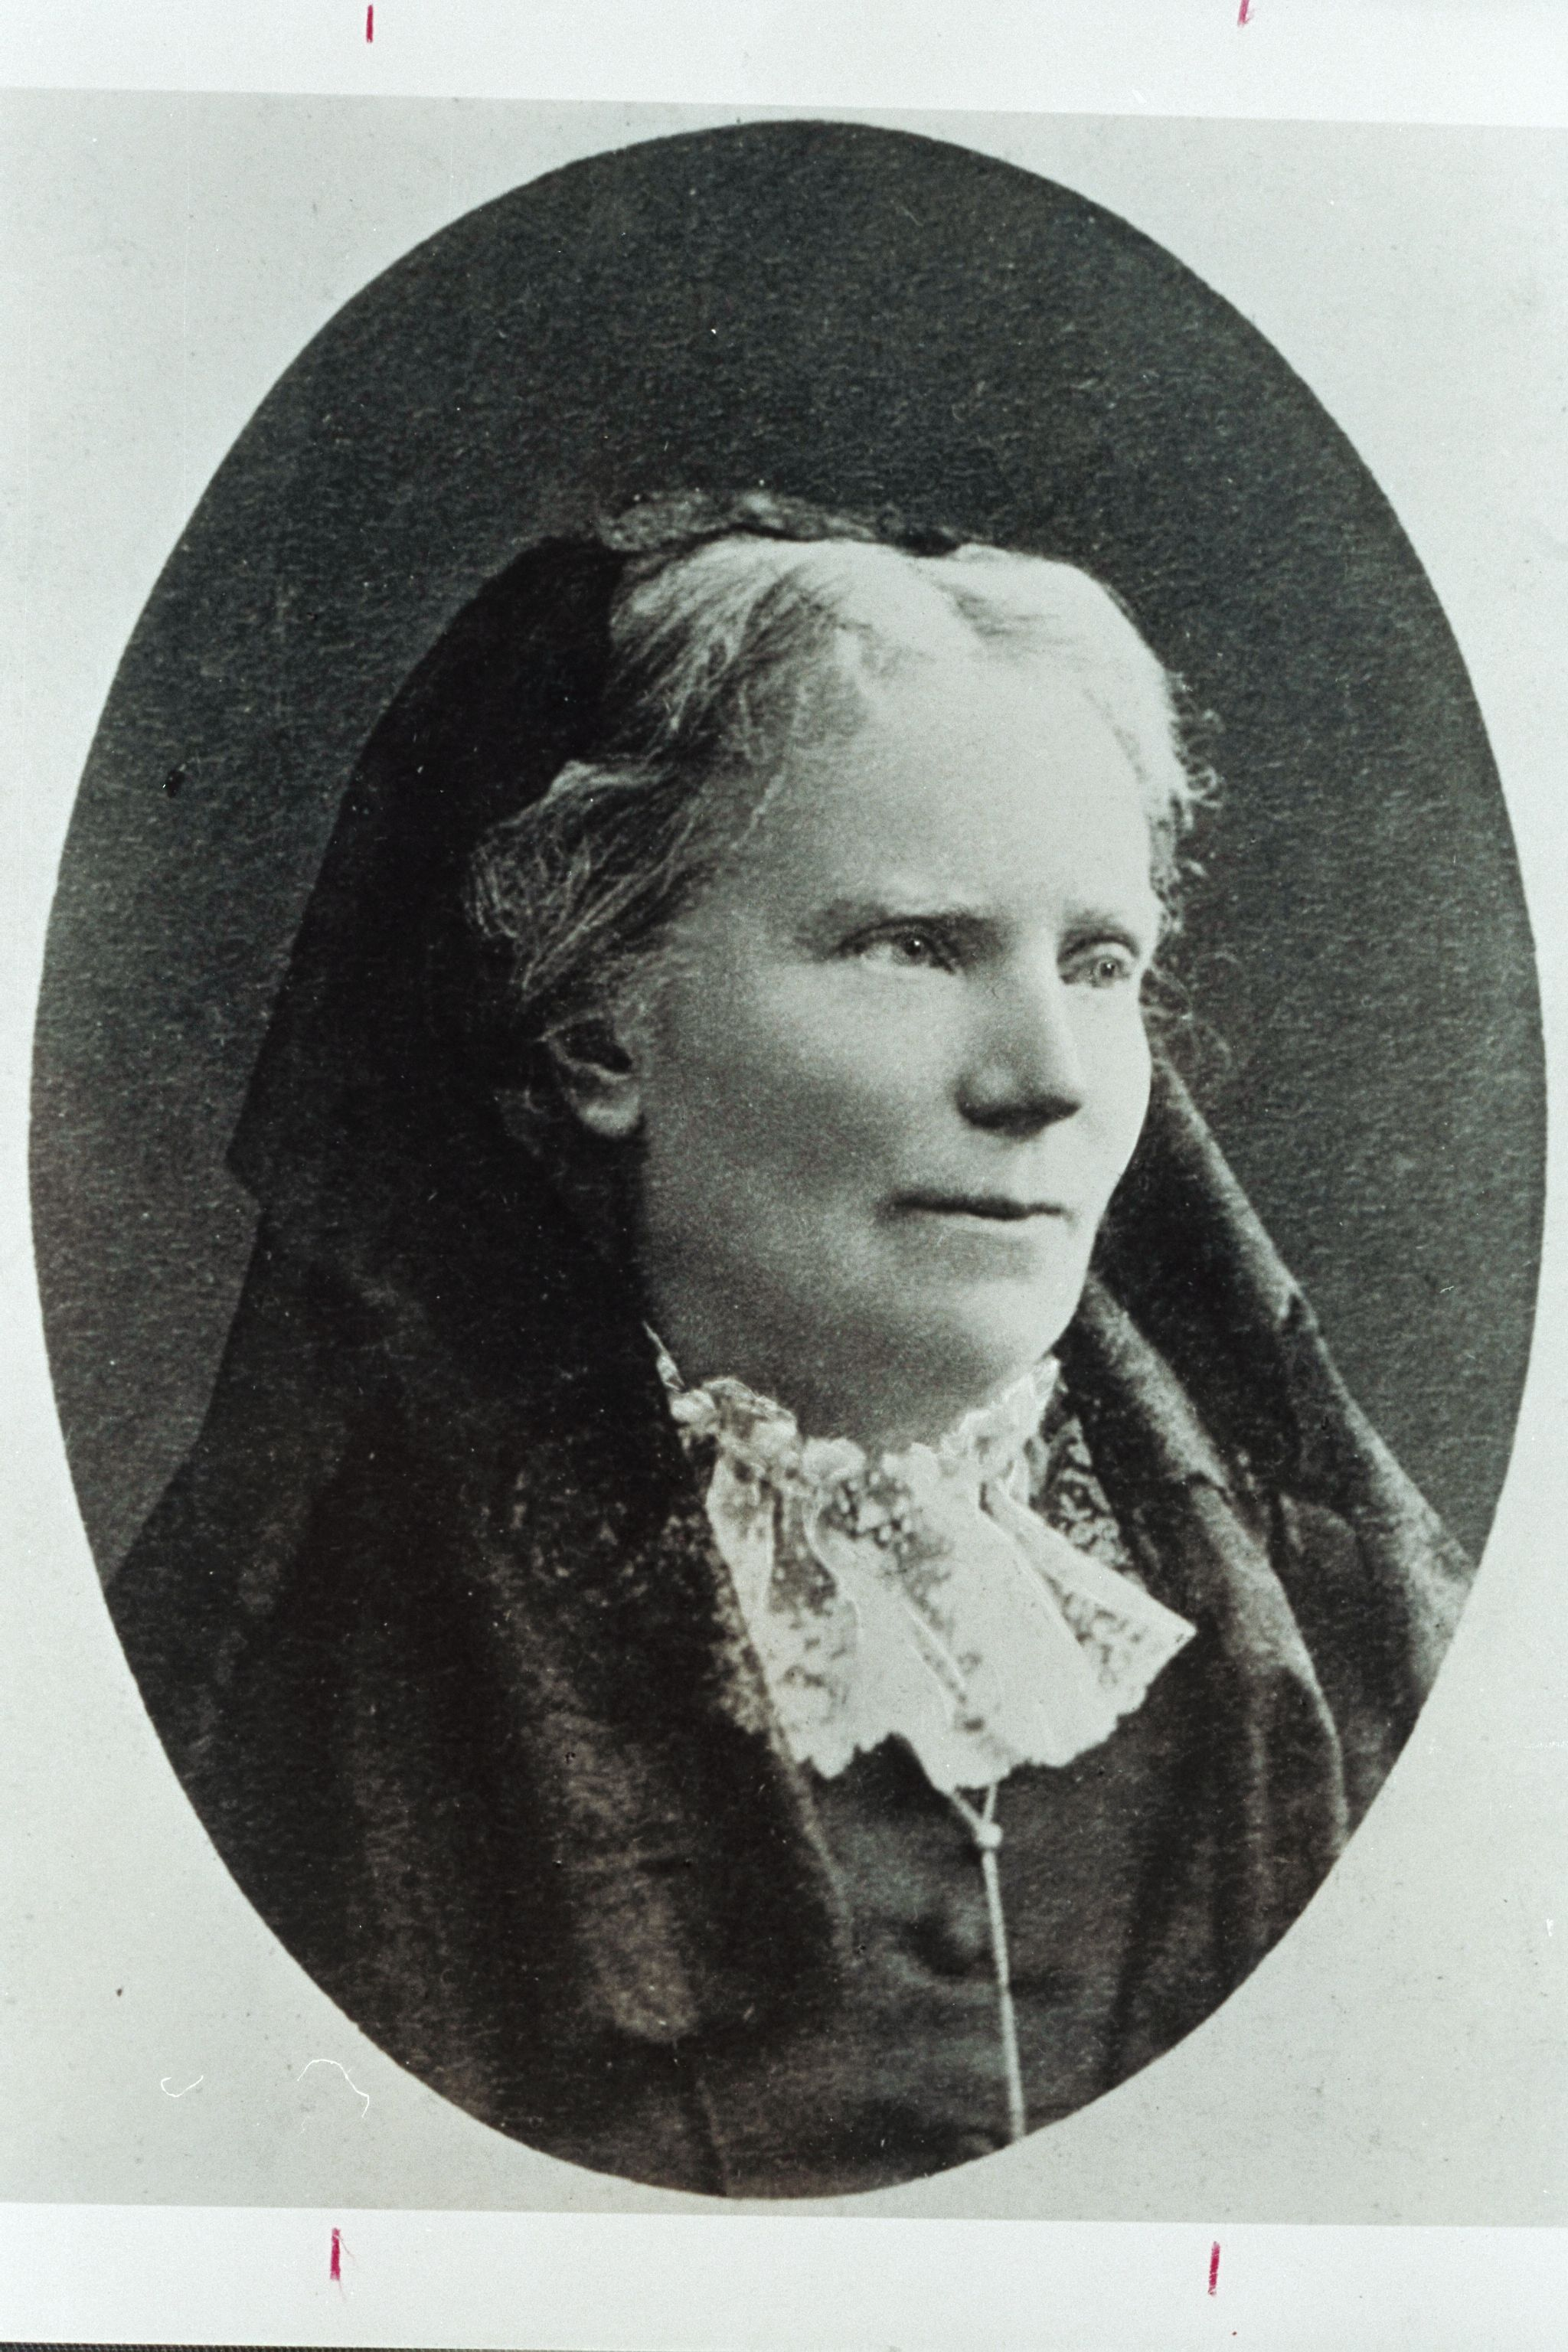 a history of elizabeth blackwell the first women doctor When the students at geneva medical college voted in jest to admit a woman, they unwittingly paved the way for elizabeth blackwell's trailblazing career.